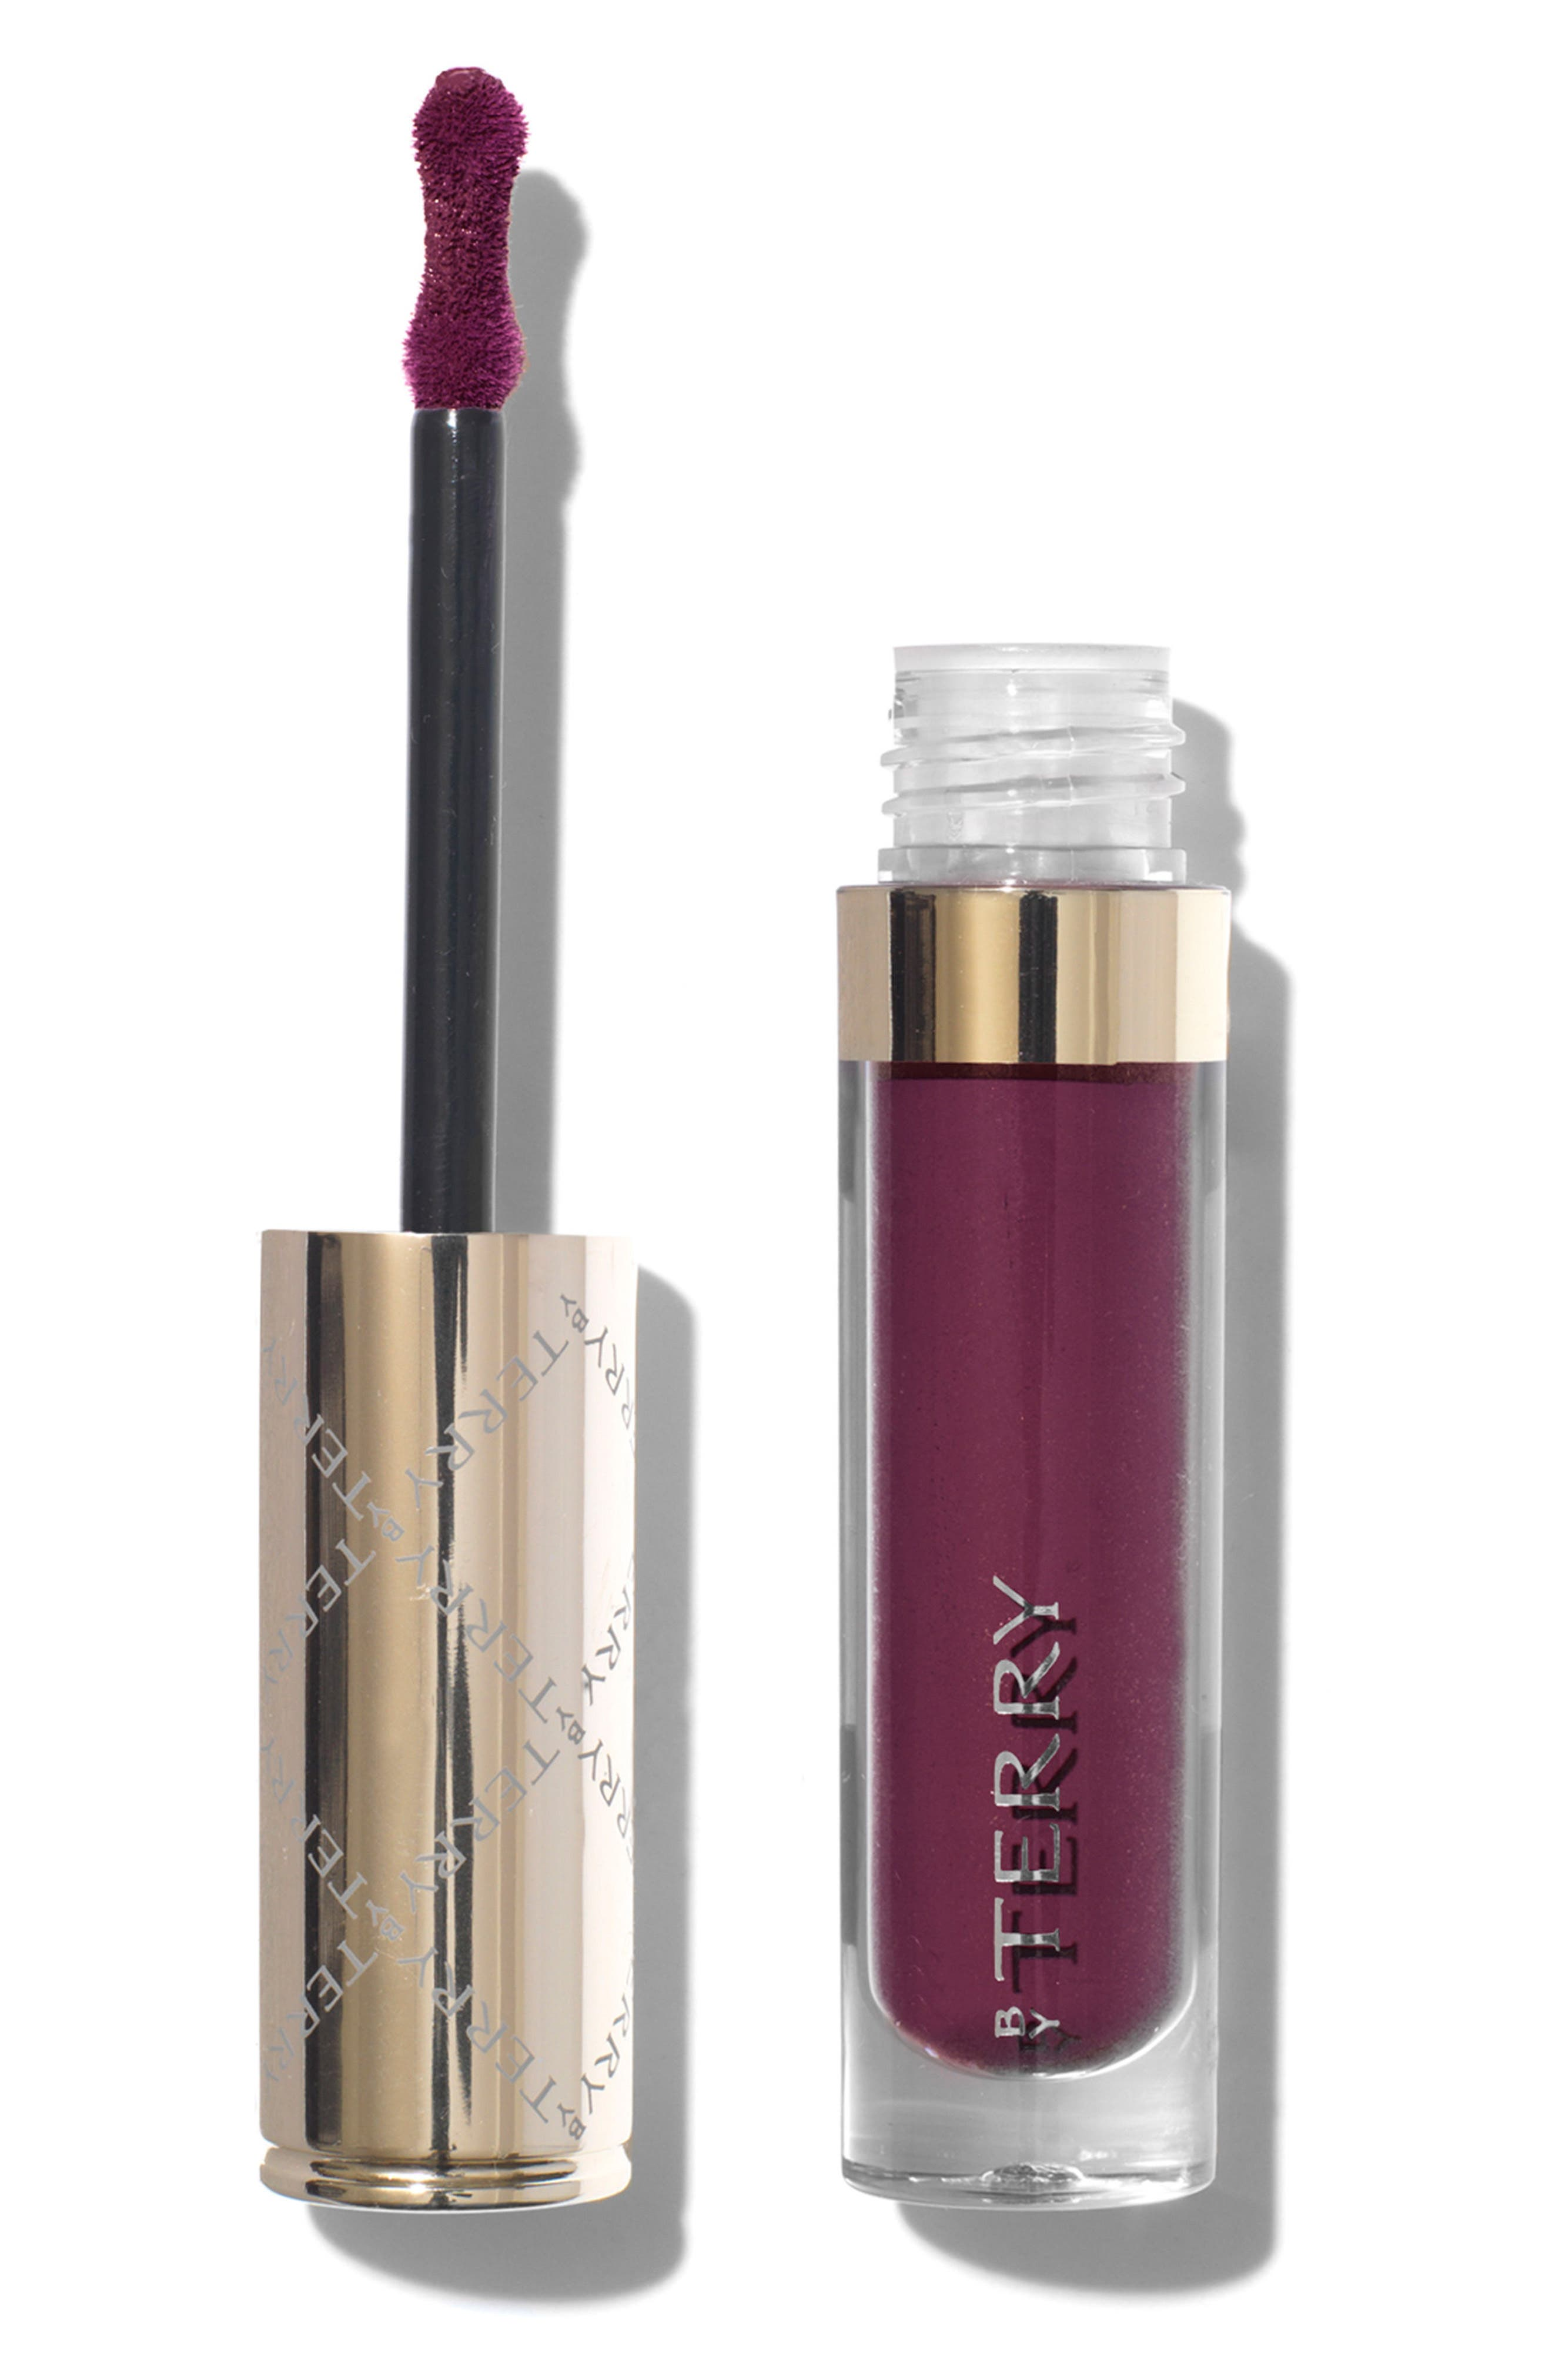 Main Image - SPACE.NK.apothecary By Terry Terrybly Velvet Rouge Liquid Lipstick